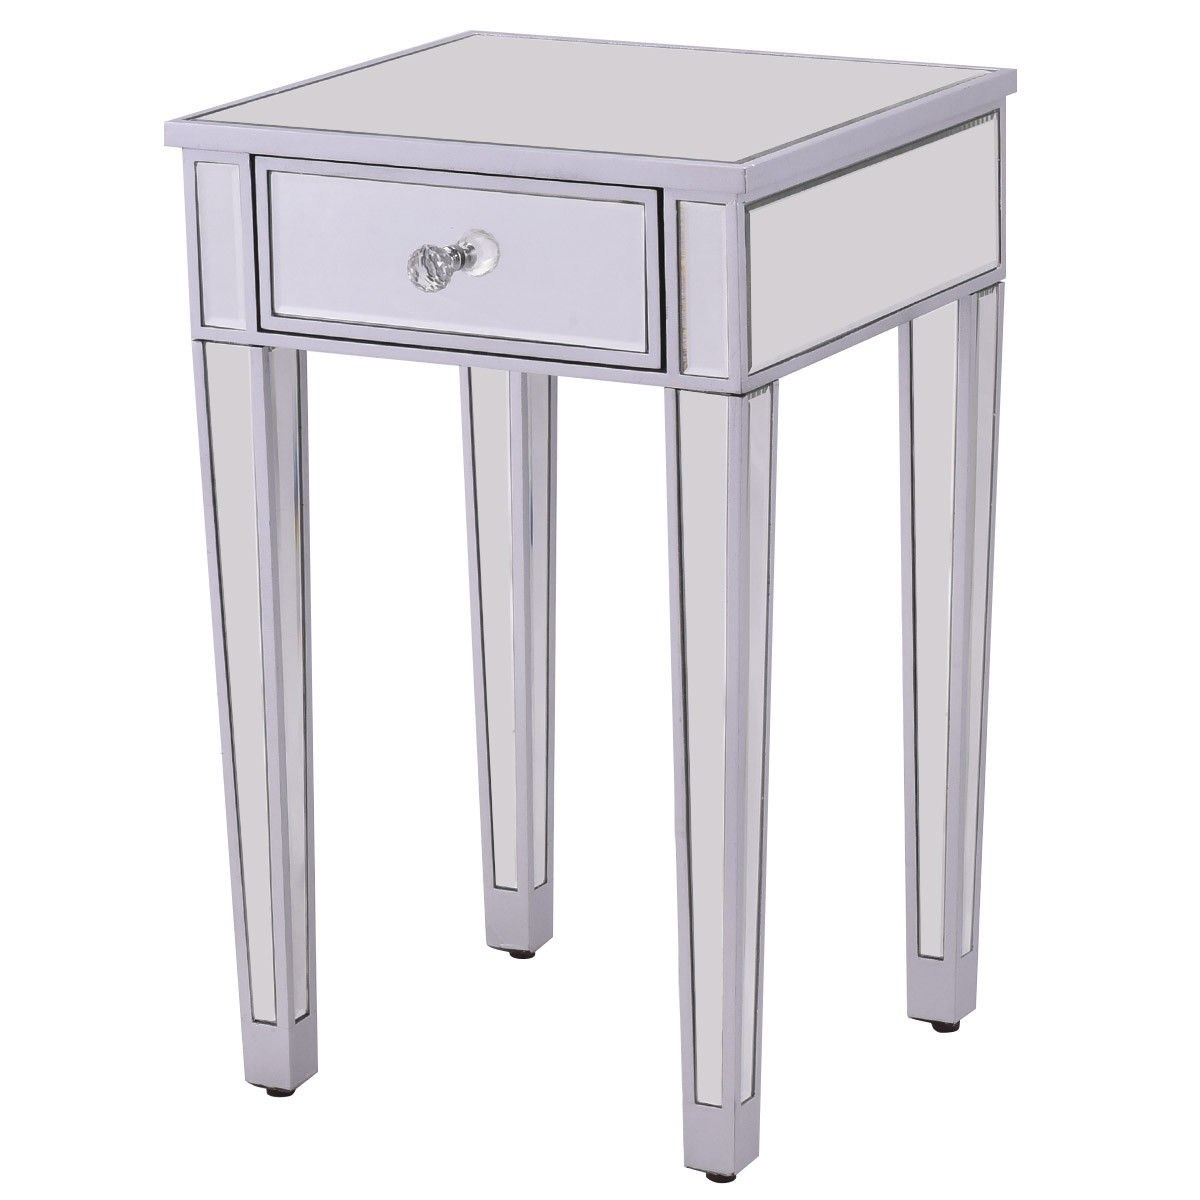 way pcs mirrored accent table nightstand end storage cabinet drawer with sliver free shipping today tall dining set pendant lighting wicker patio furniture sets mid century entry